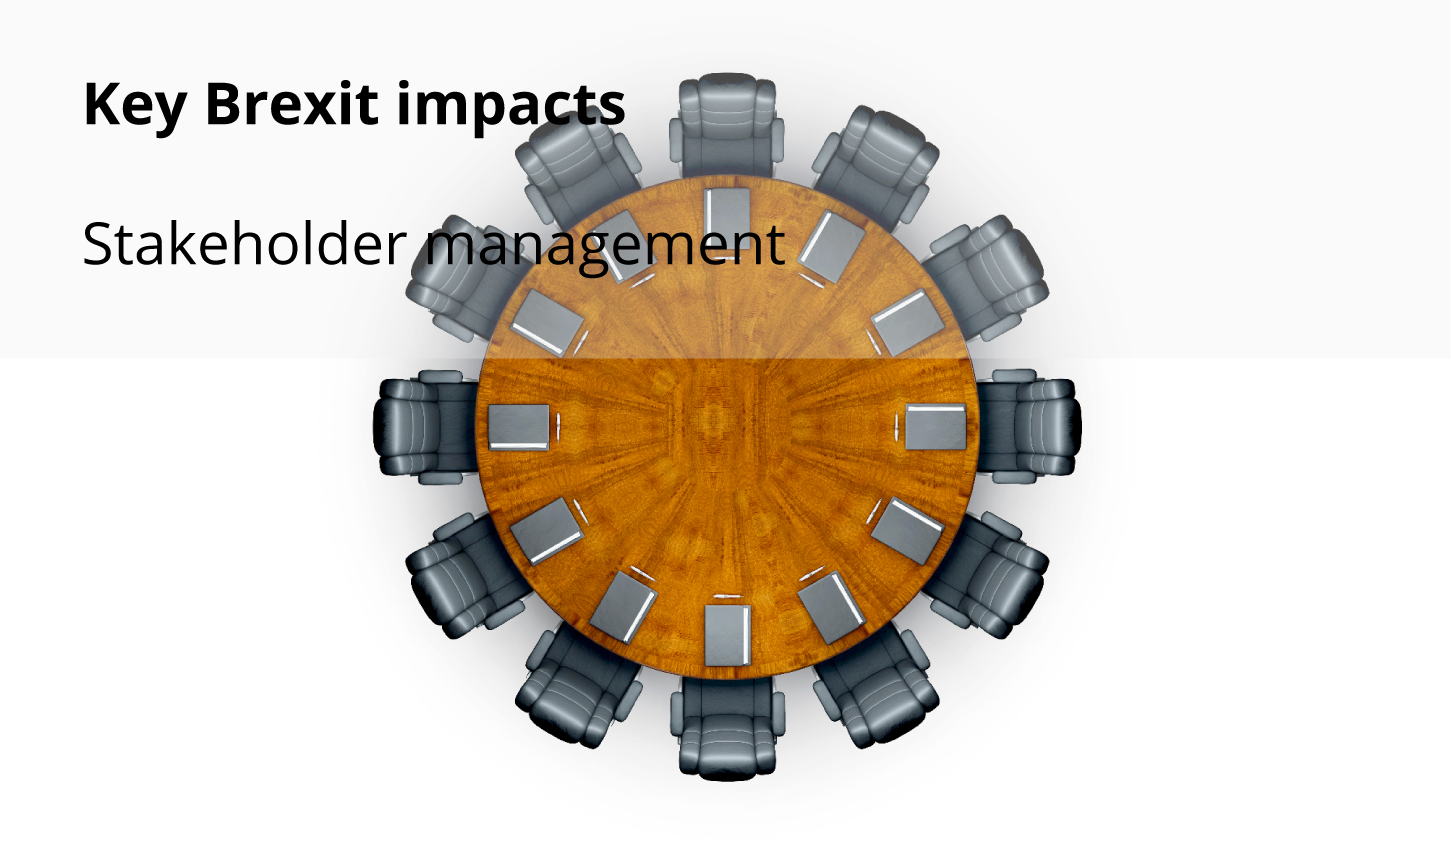 Key Brexit impacts: Stakeholder management